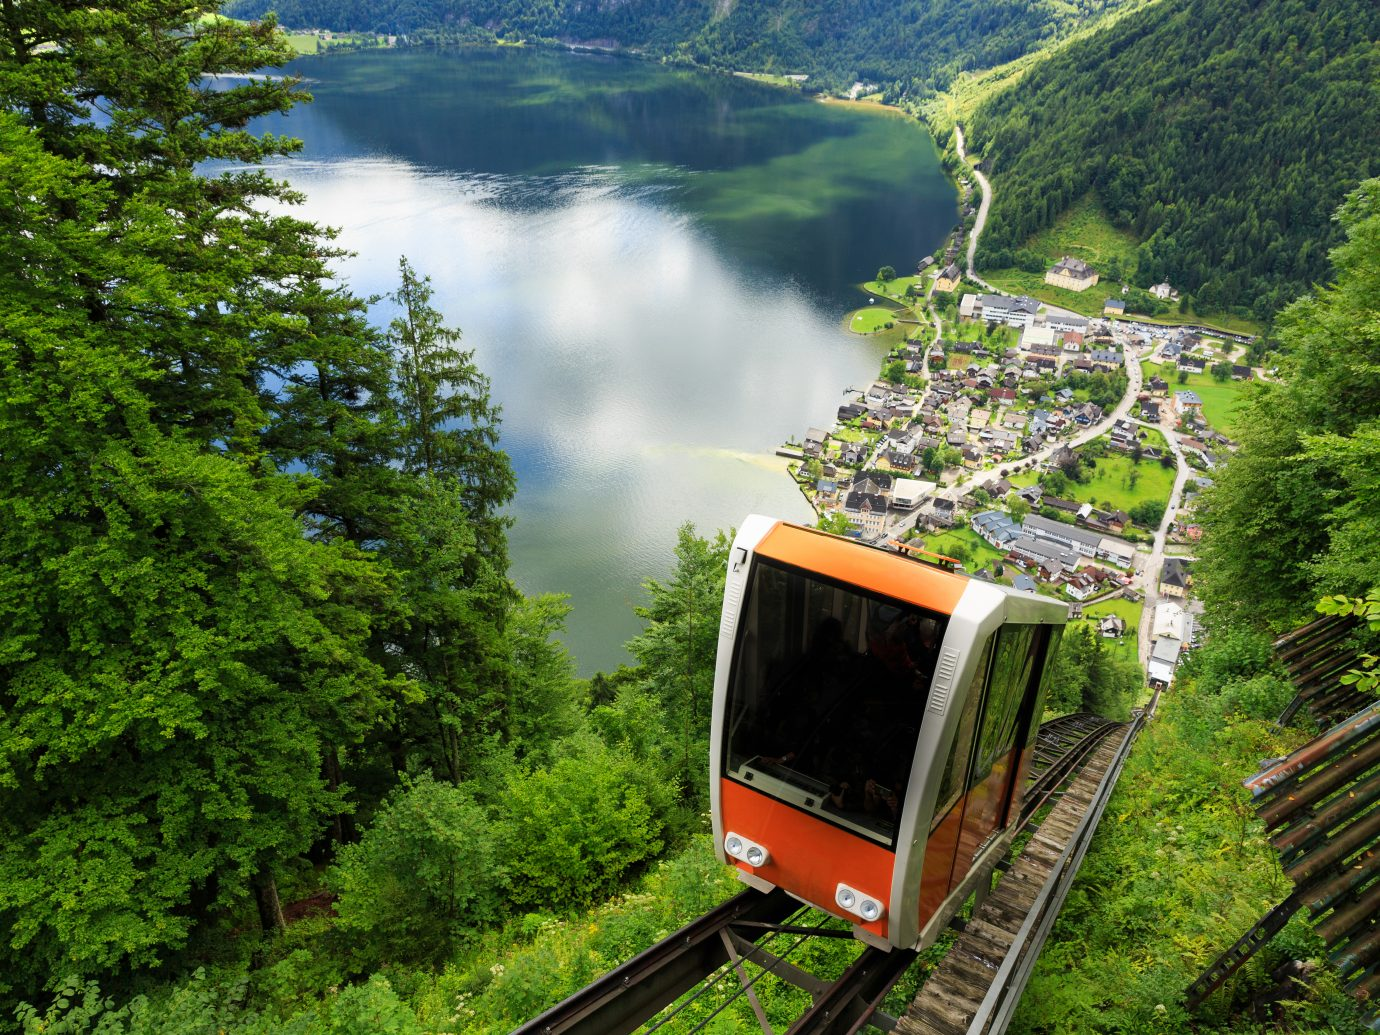 A cable car taking visitors up to Salzwelten mine in Hallstatt